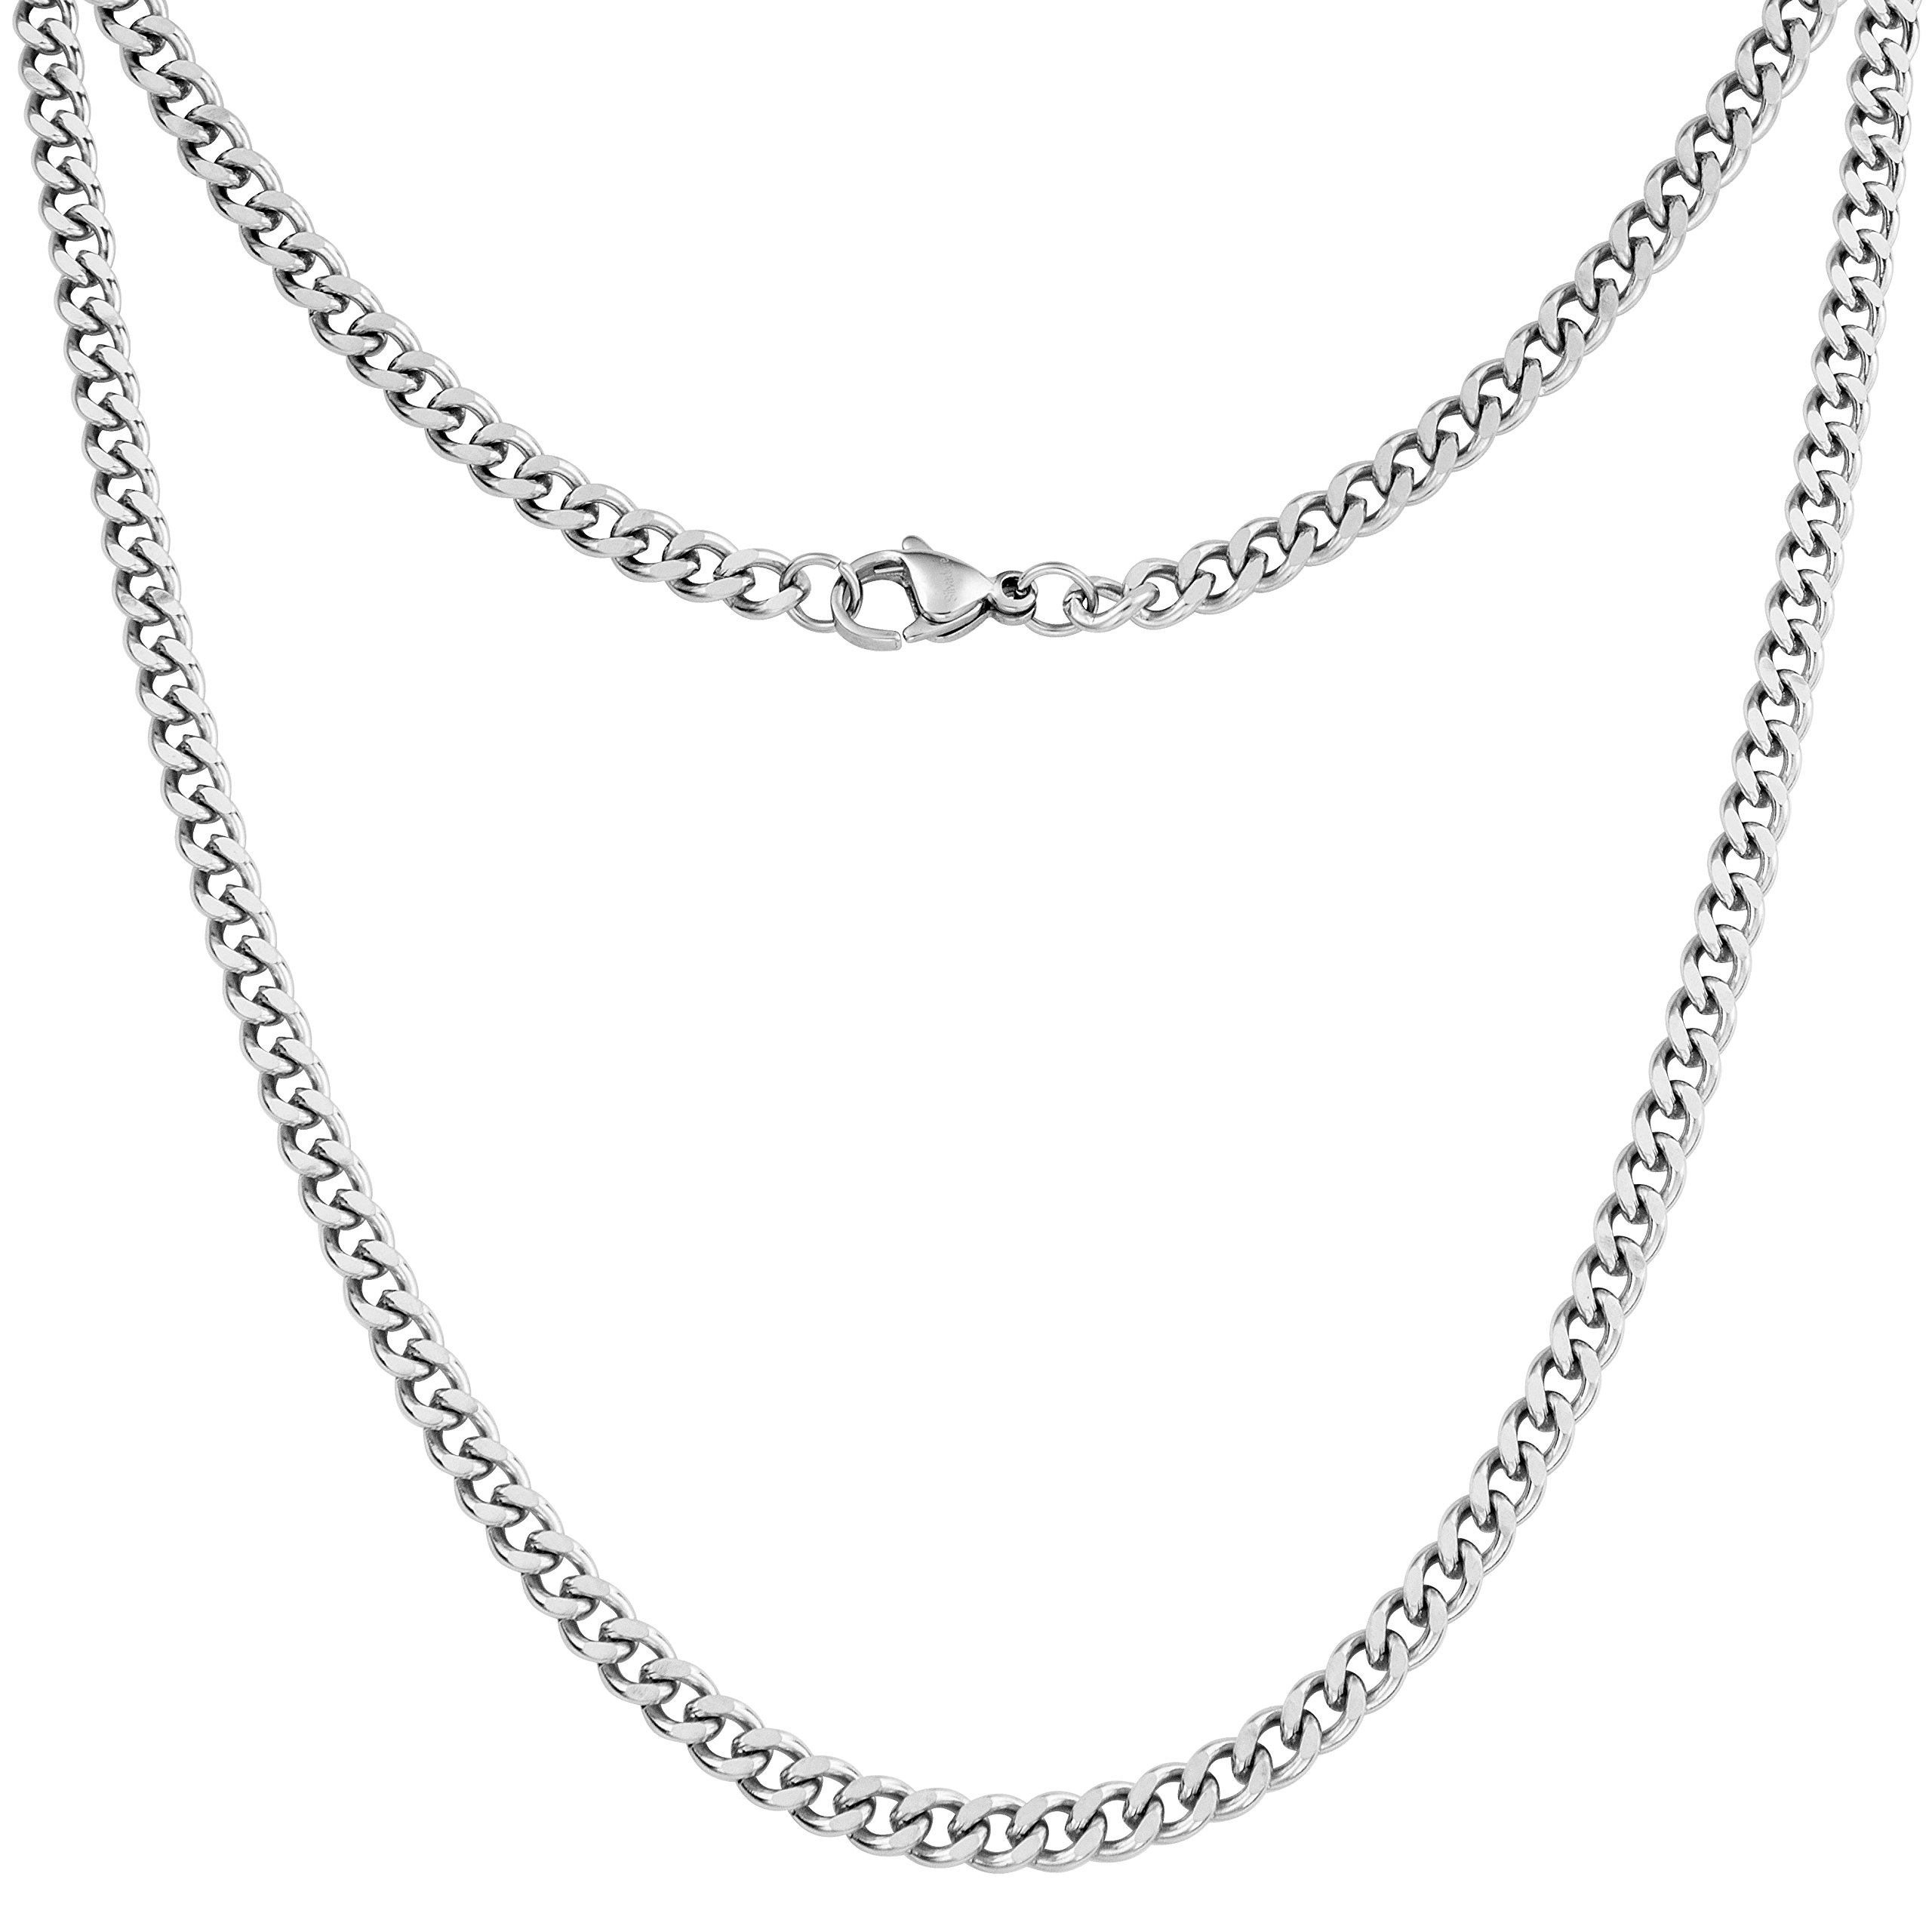 Silvadore 4mm Curb Mens Necklace - Silver Chain Cuban Stainless Steel Jewelry - Neck Link Chains for Men Man Women Boys Male Military - 14 16 18 20 22 24 26 36 inch (18, Cardboard Box)